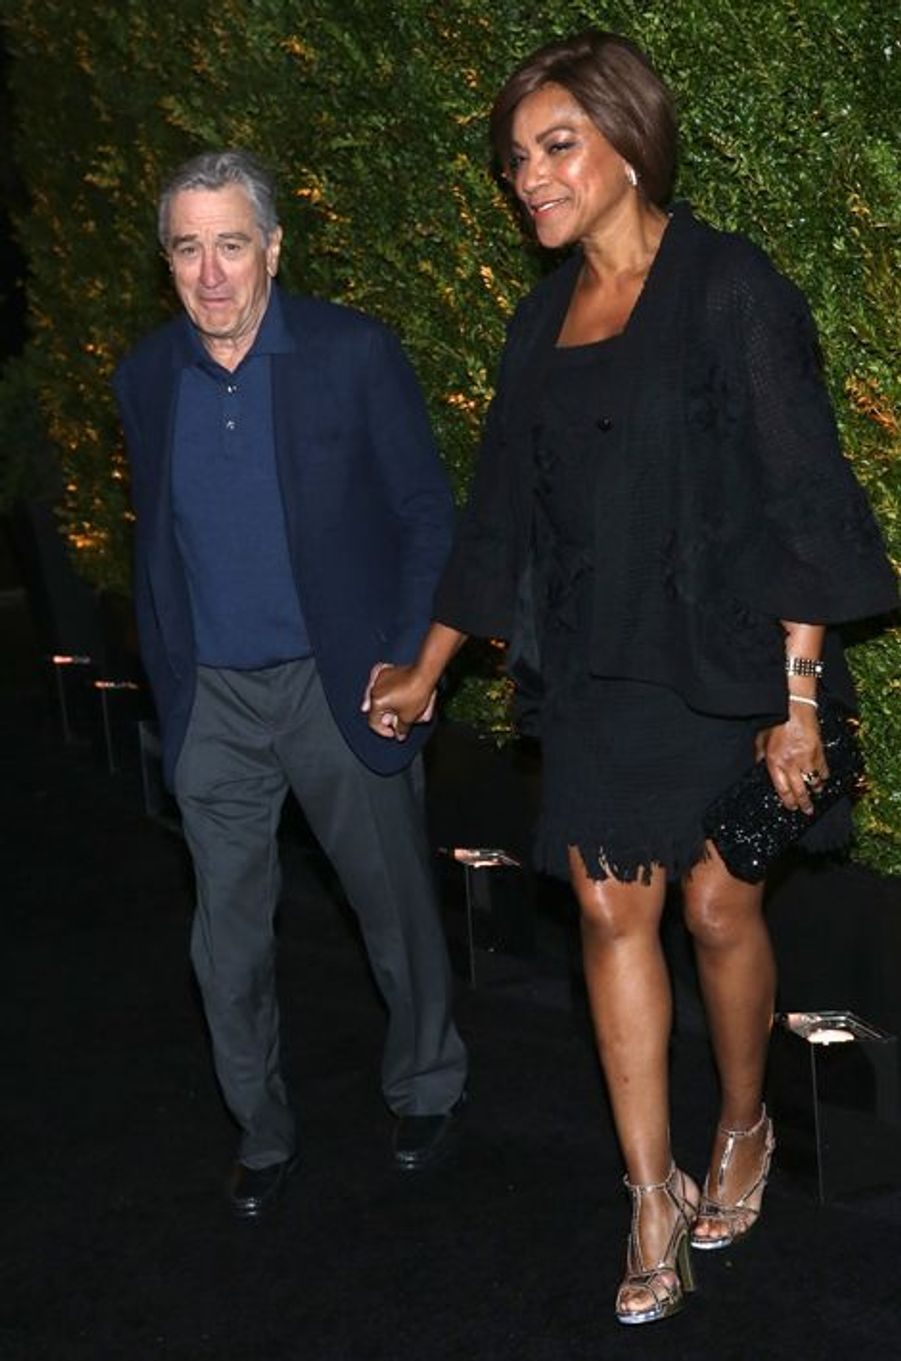 Robert De Niro et Grace Hightower à New York le 20 avril 2015